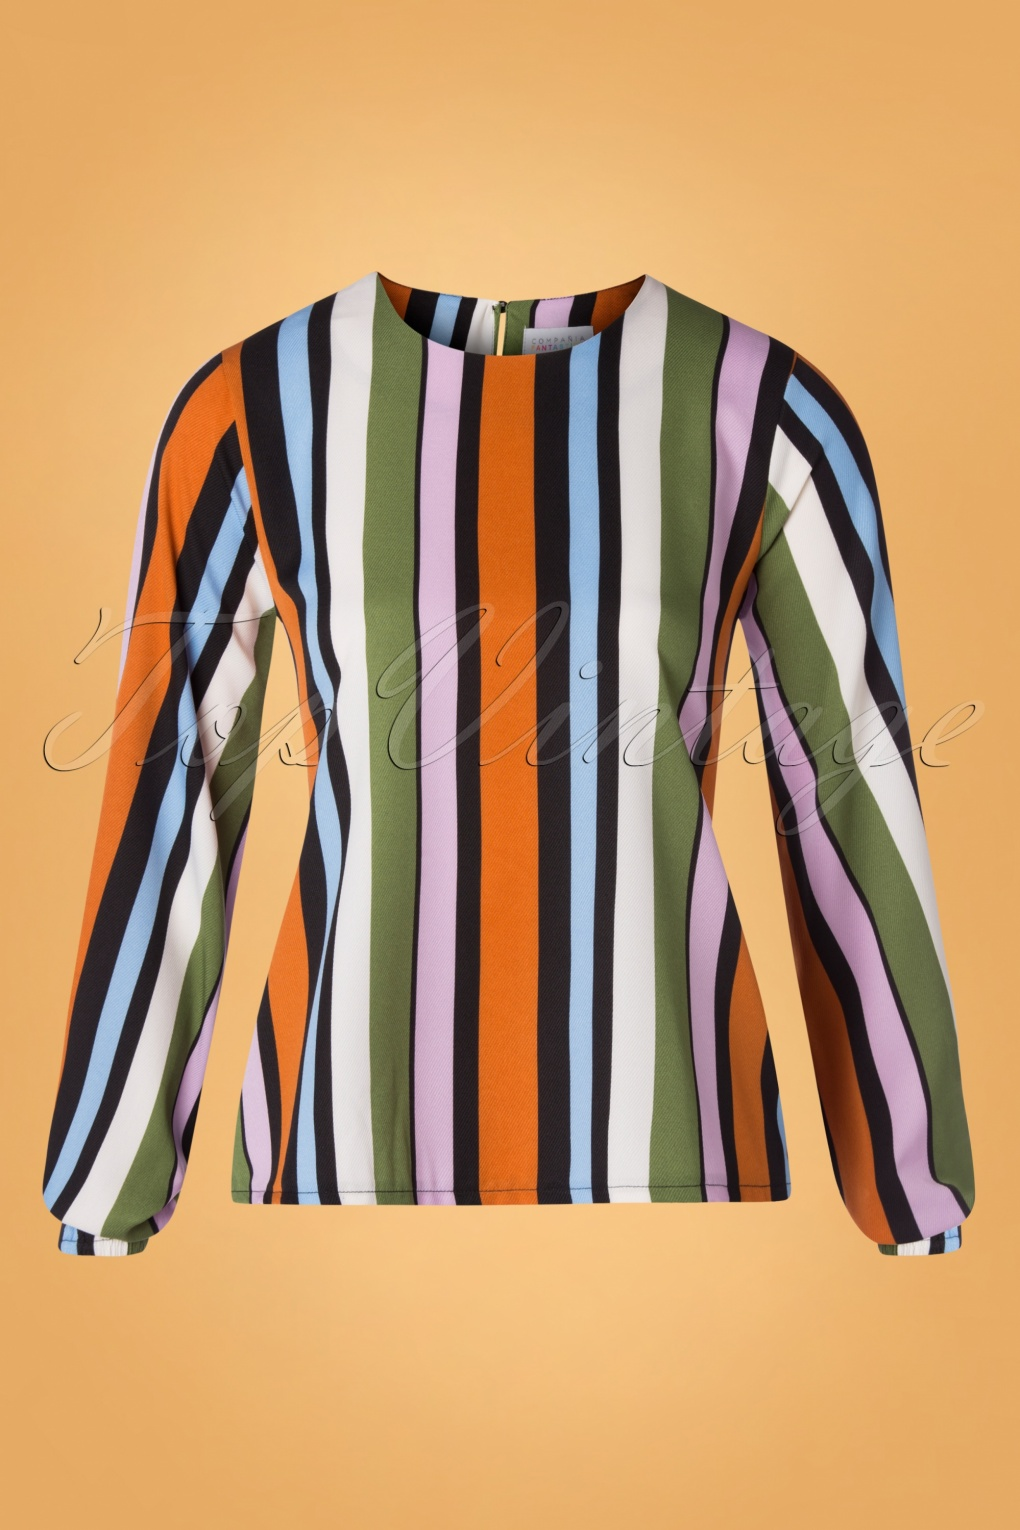 Women's 70s Shirts, Blouses, Hippie Tops 70s Staci Stripes Blouse in Multi £32.34 AT vintagedancer.com